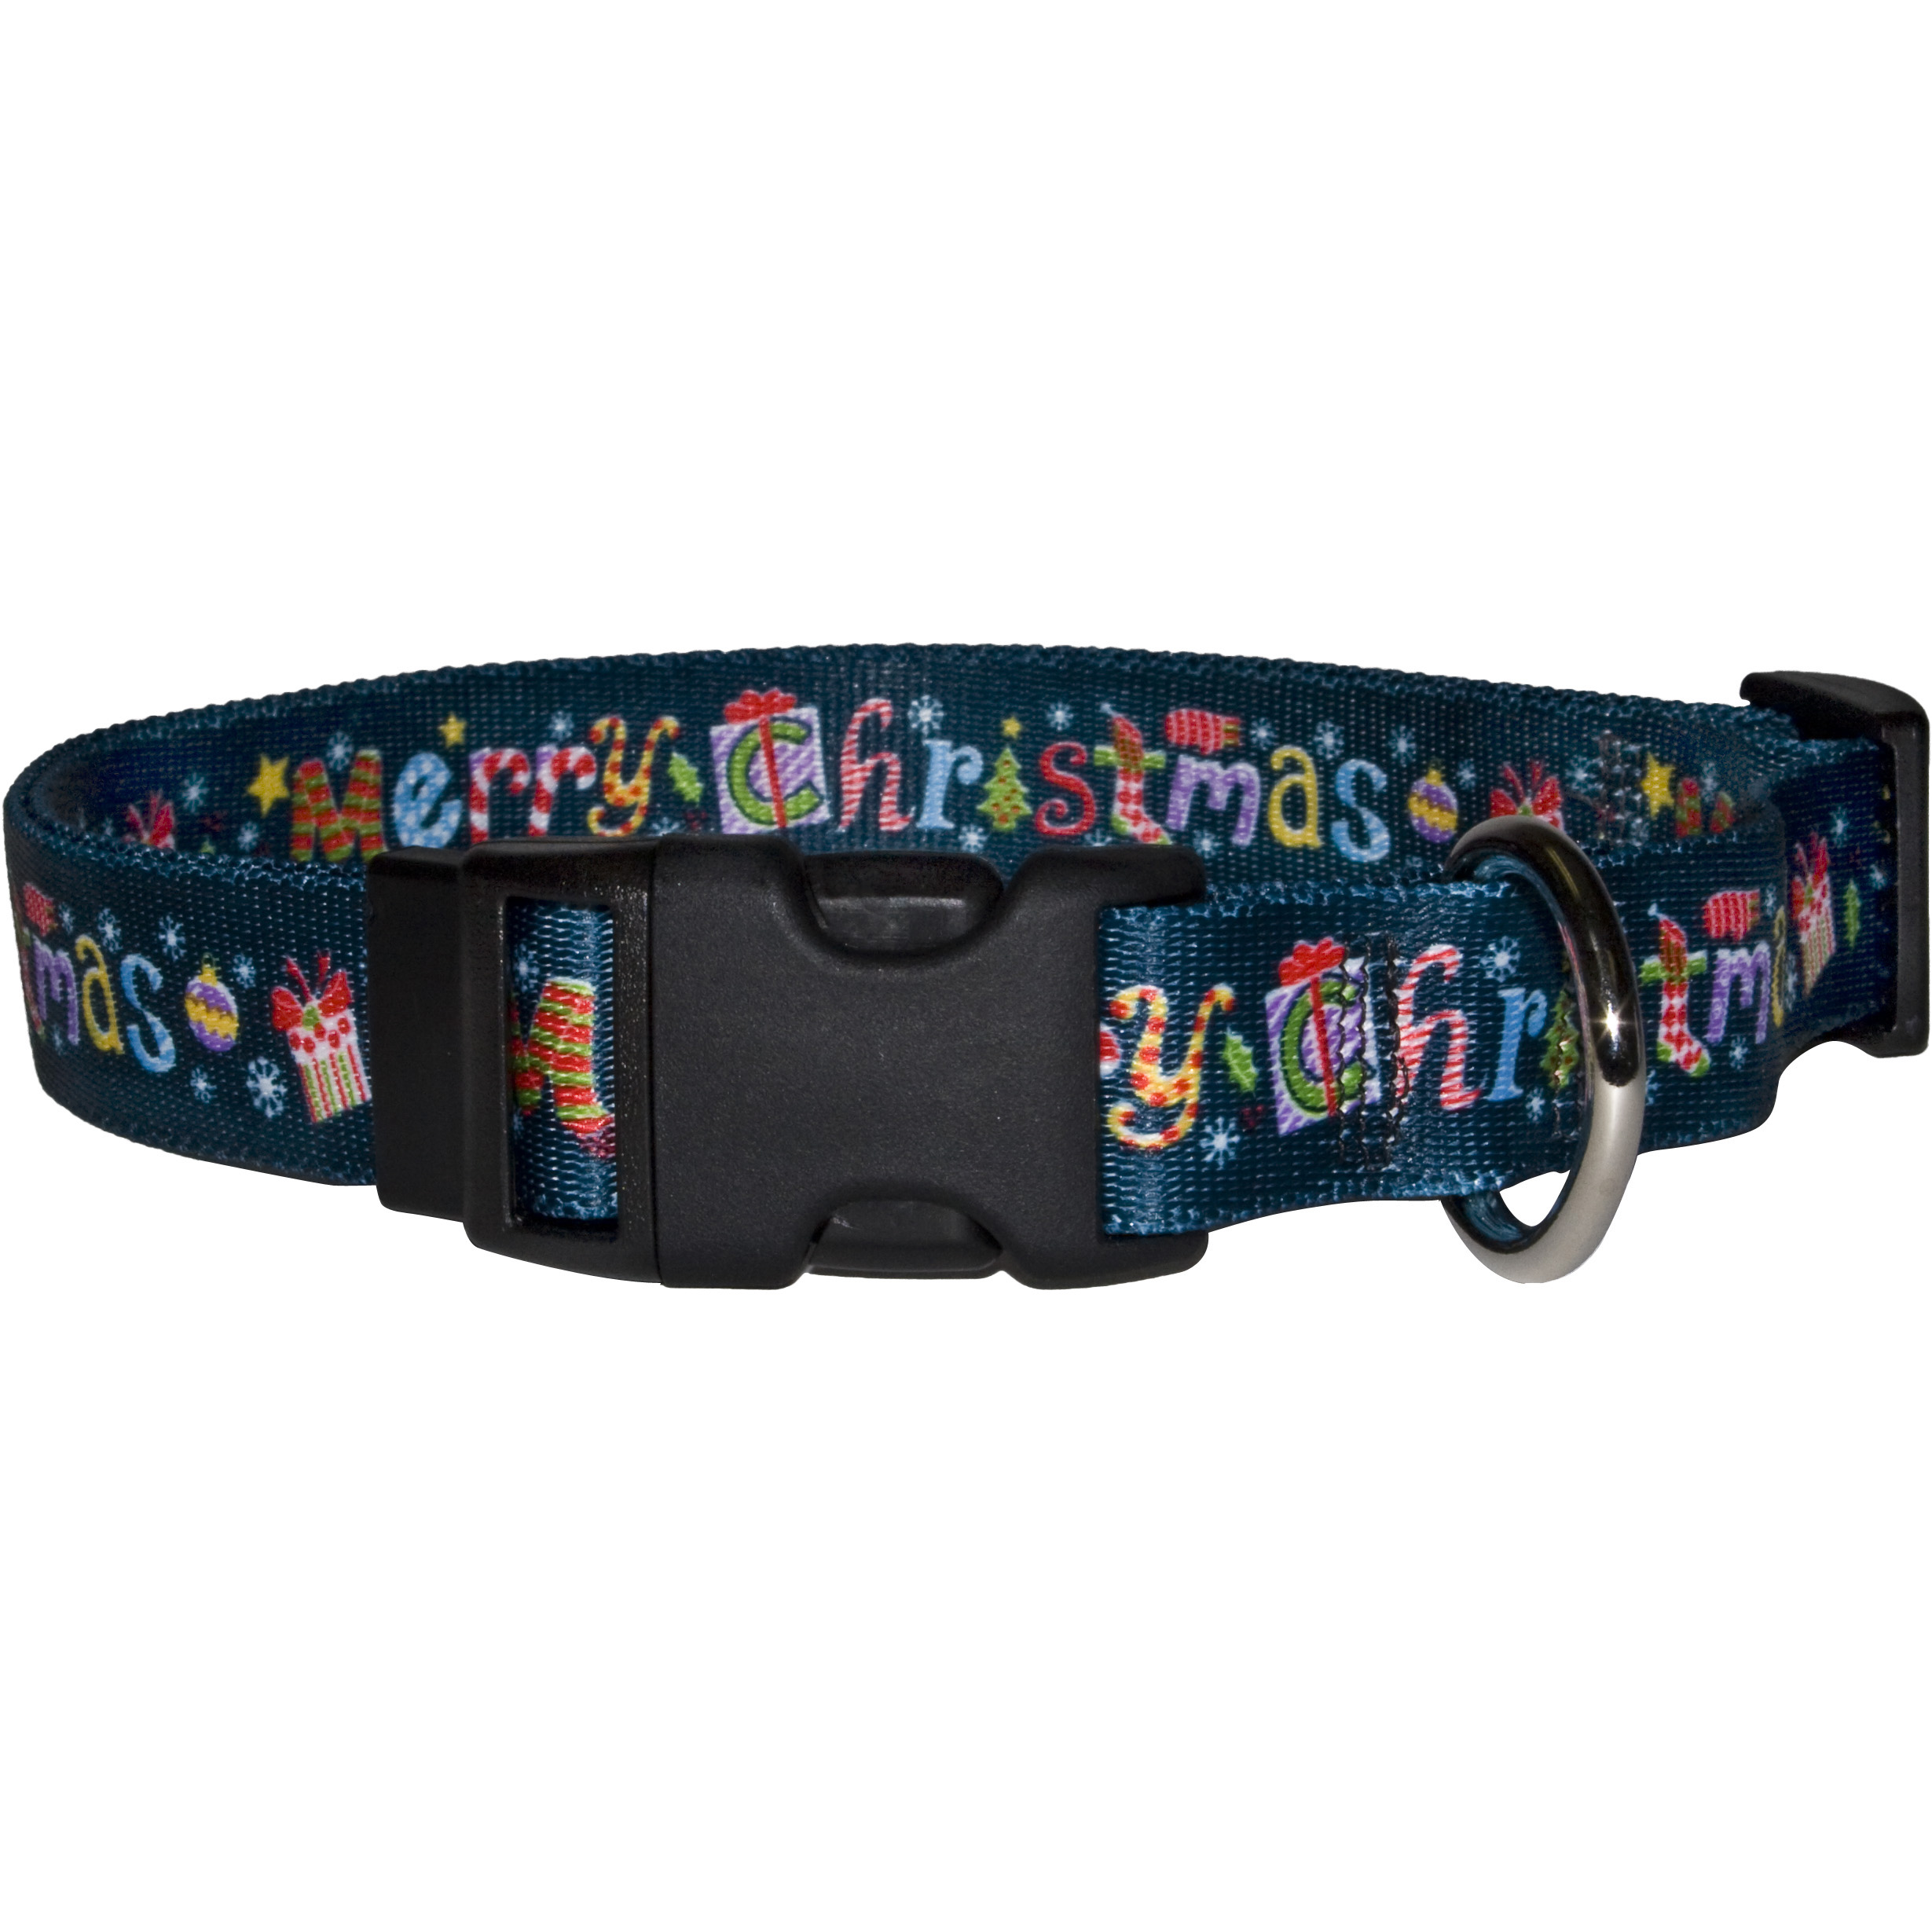 Yellow Dog Design Merry Christmas Collar, Harness & Leash